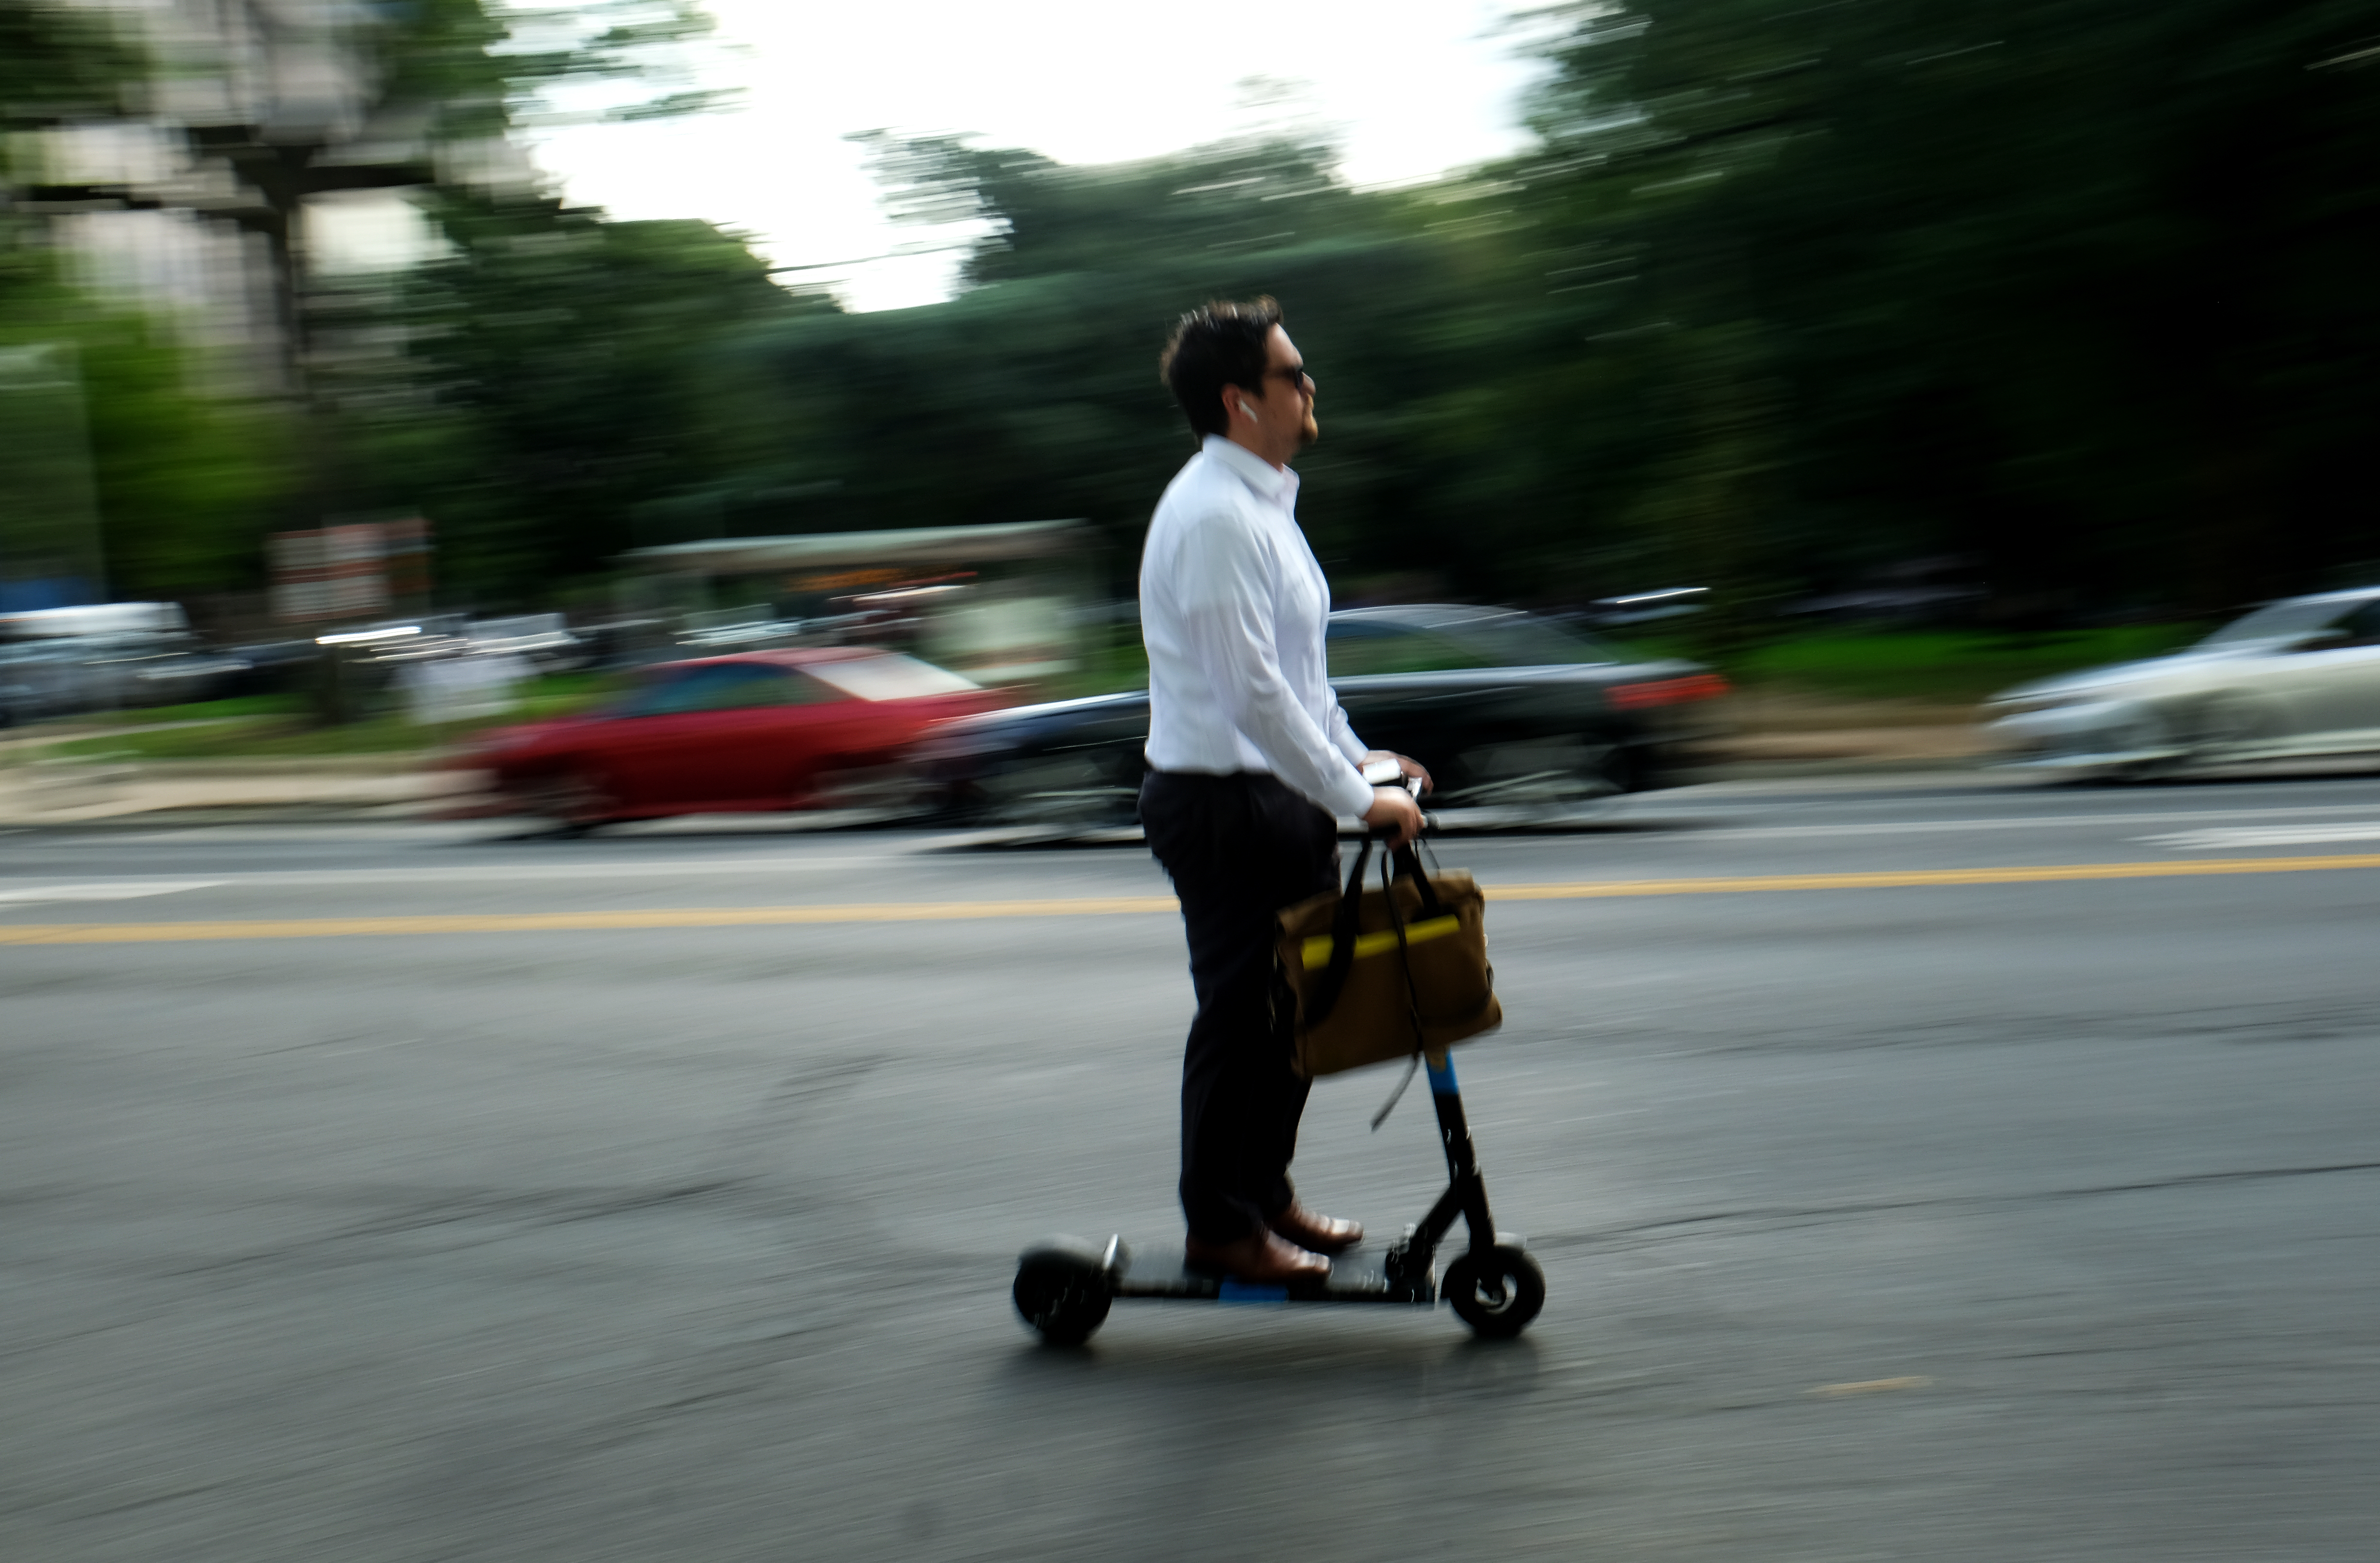 Emergency rooms see spike in scooter-related head injuries - The